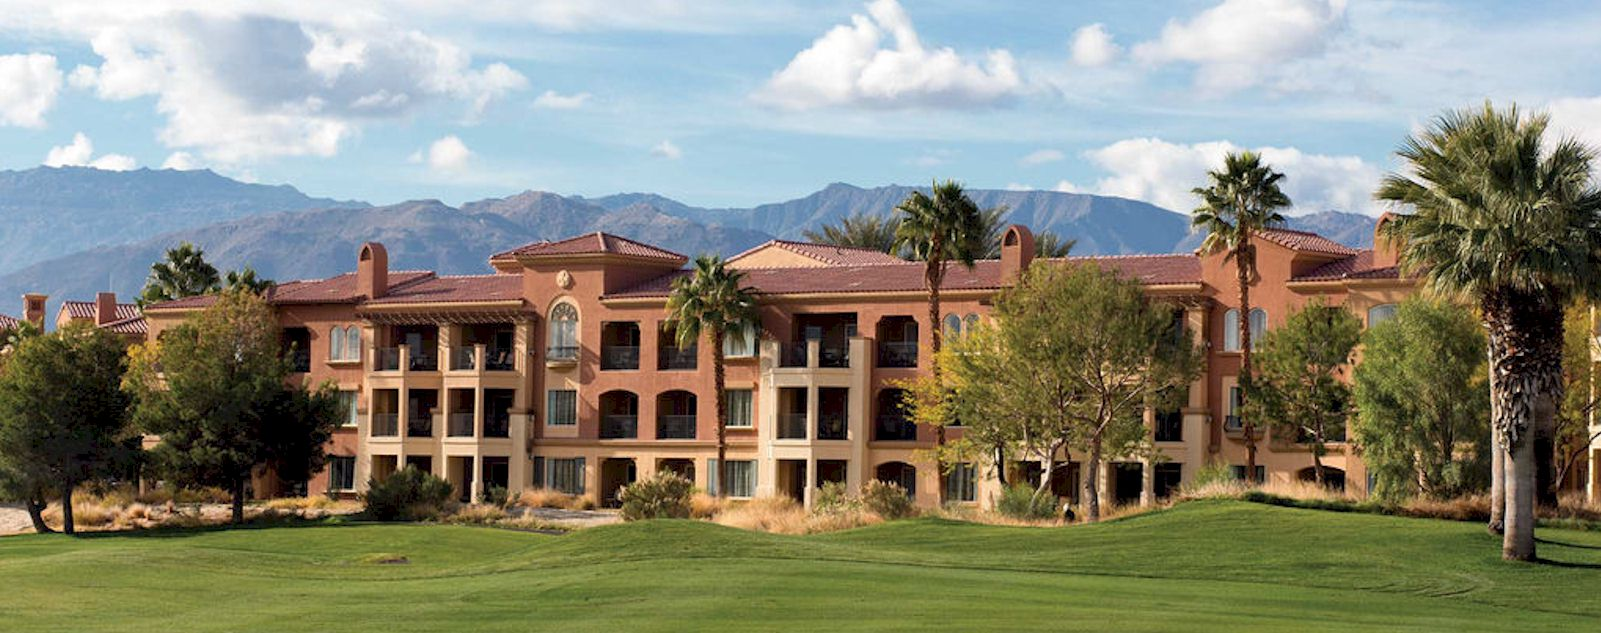 Marriott S Shadow Ridge Dream Vacation Villas Resort